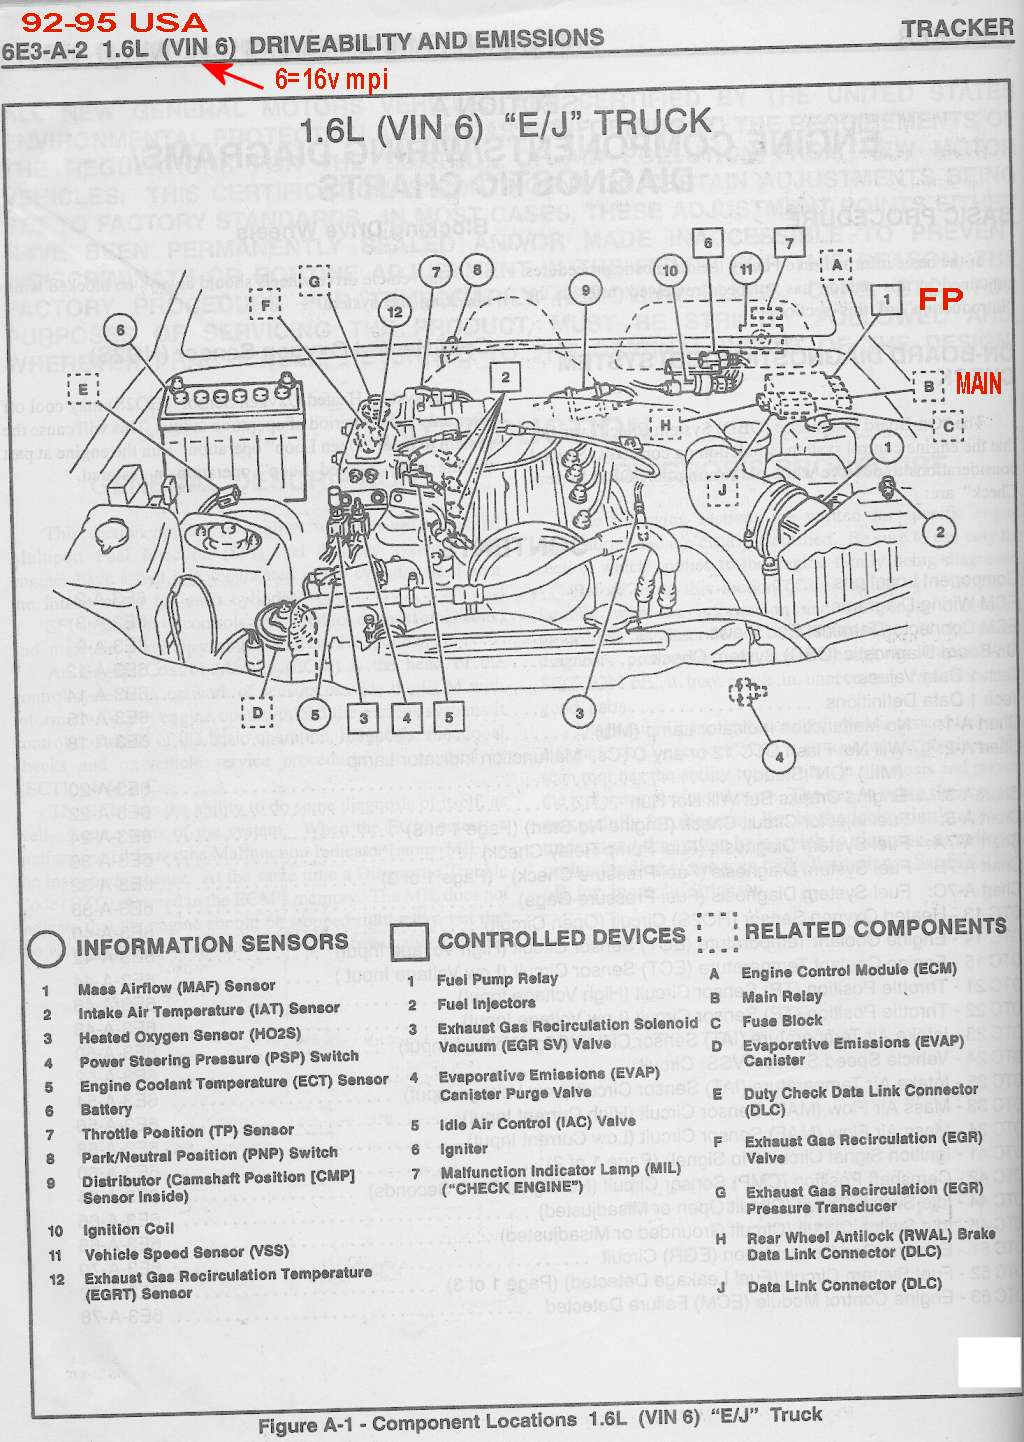 2002 Chevrolet Prizm Under Dash Fuse Box Diagram Wiring